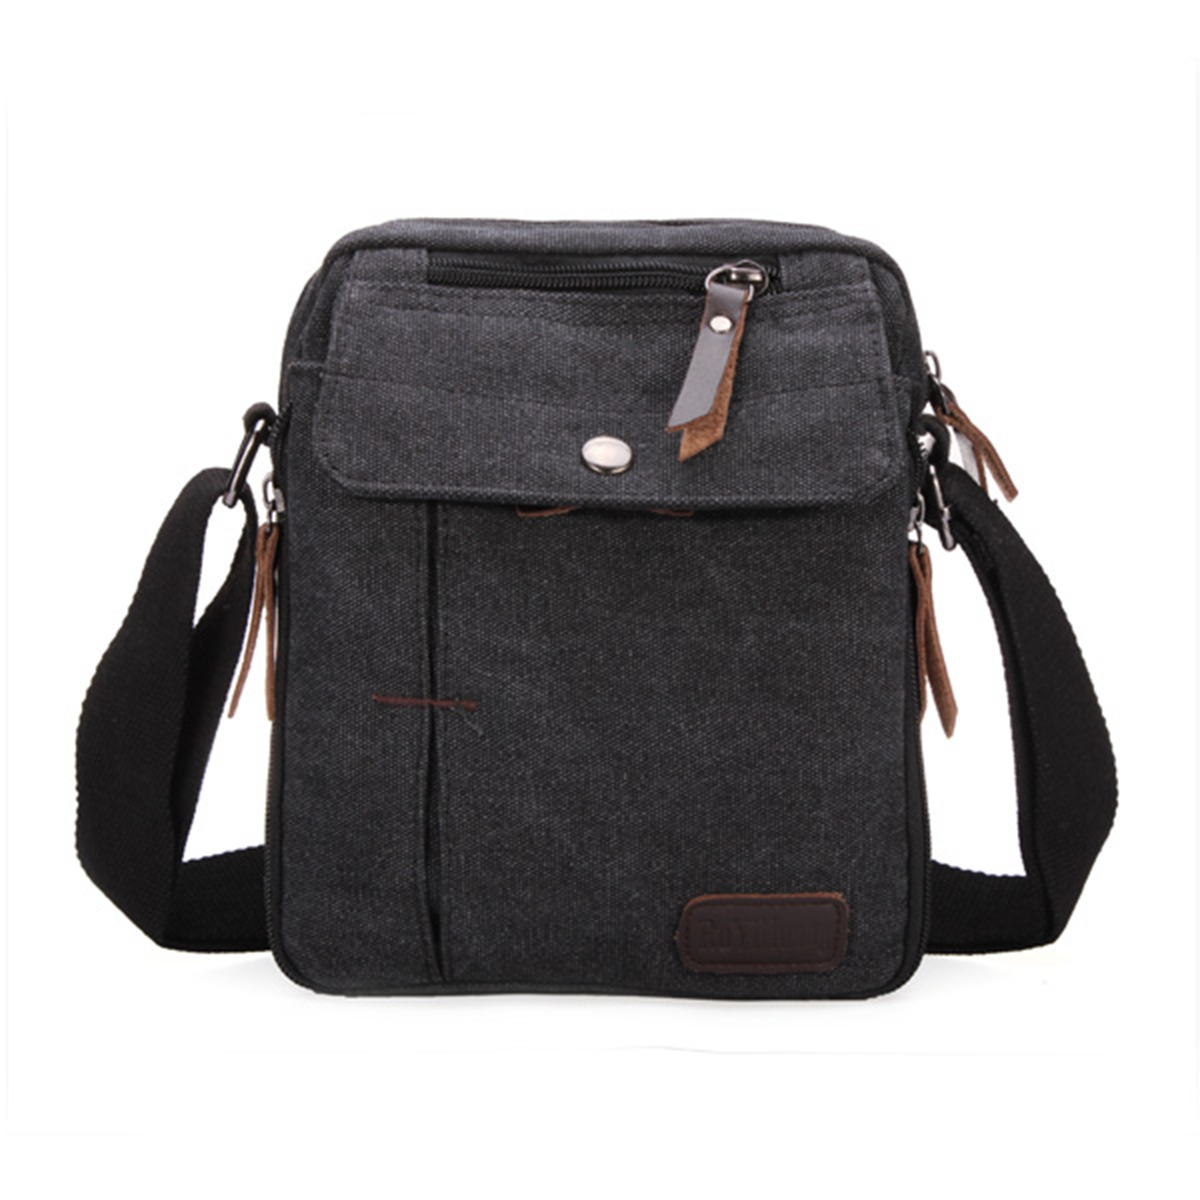 Online shopping for Shoes & Bags from a great selection of Shoulder Bags, Top-Handle Bags, Cross-Body Bags, Carry-All & Organiser Clutches & more at everyday low prices. kejal-2191.tk Try Prime LOSMILE Mens Canvas Messenger Shoulder Bag. £ Prime. out of 5 stars